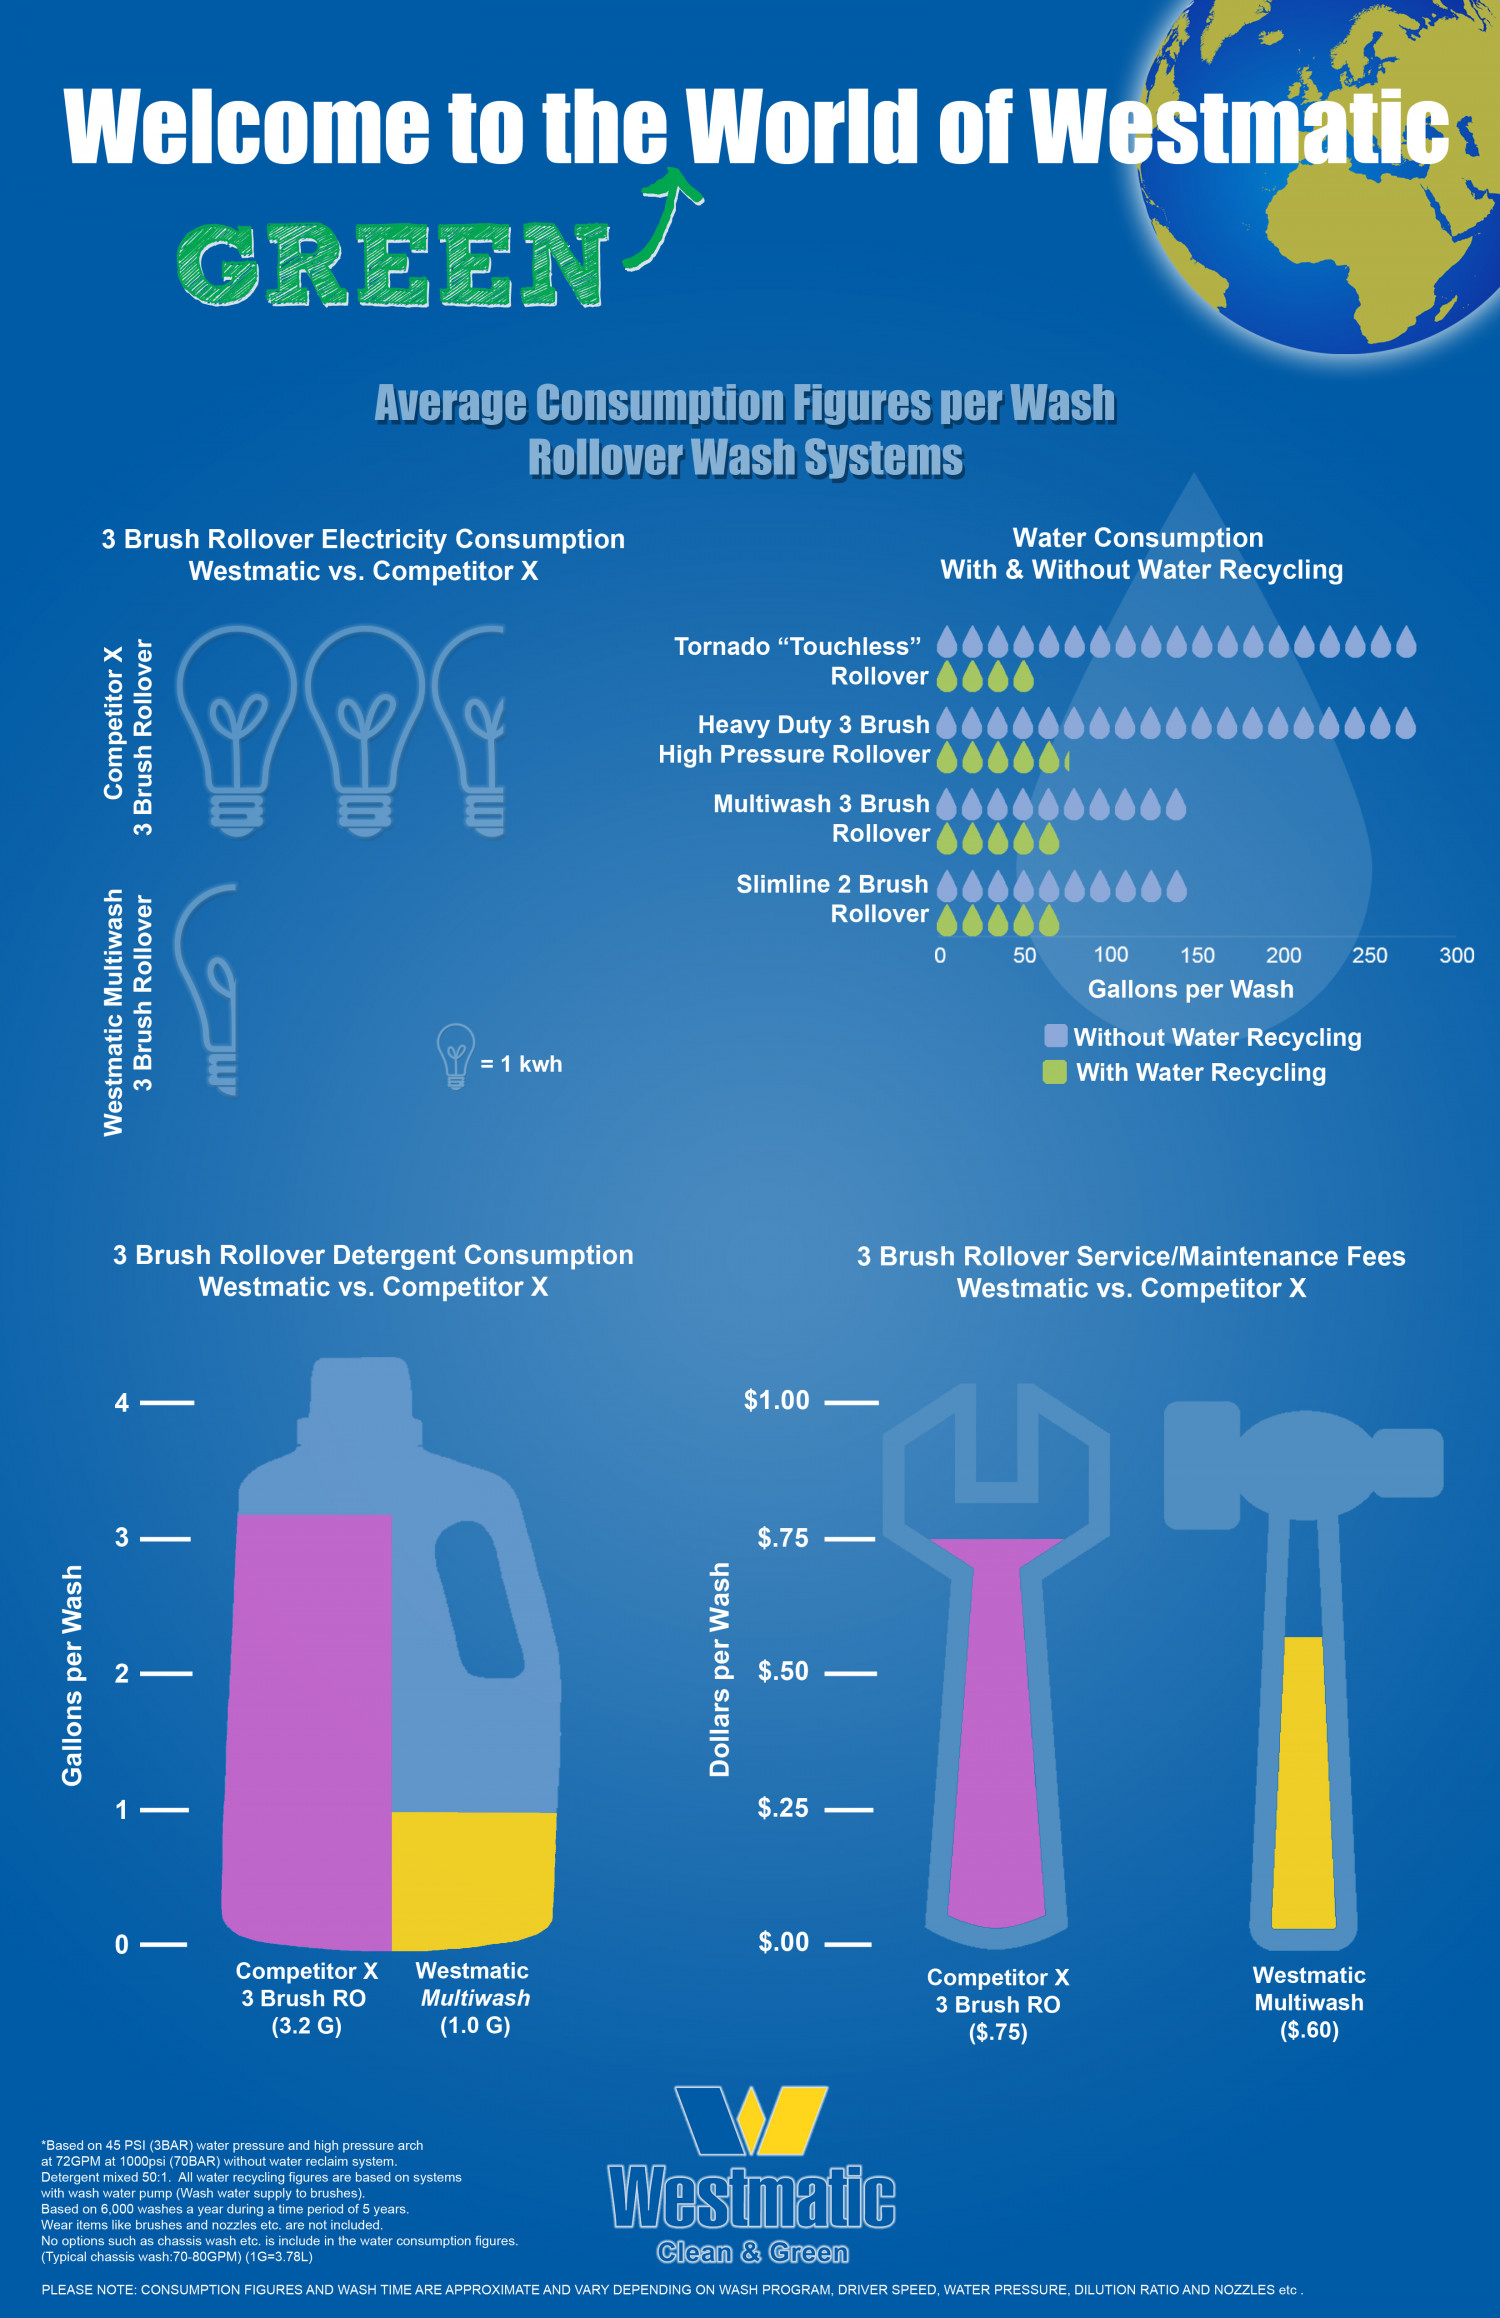 Westmatic Large Vehicle Wash Systems | Average Consumption Figures Infographic